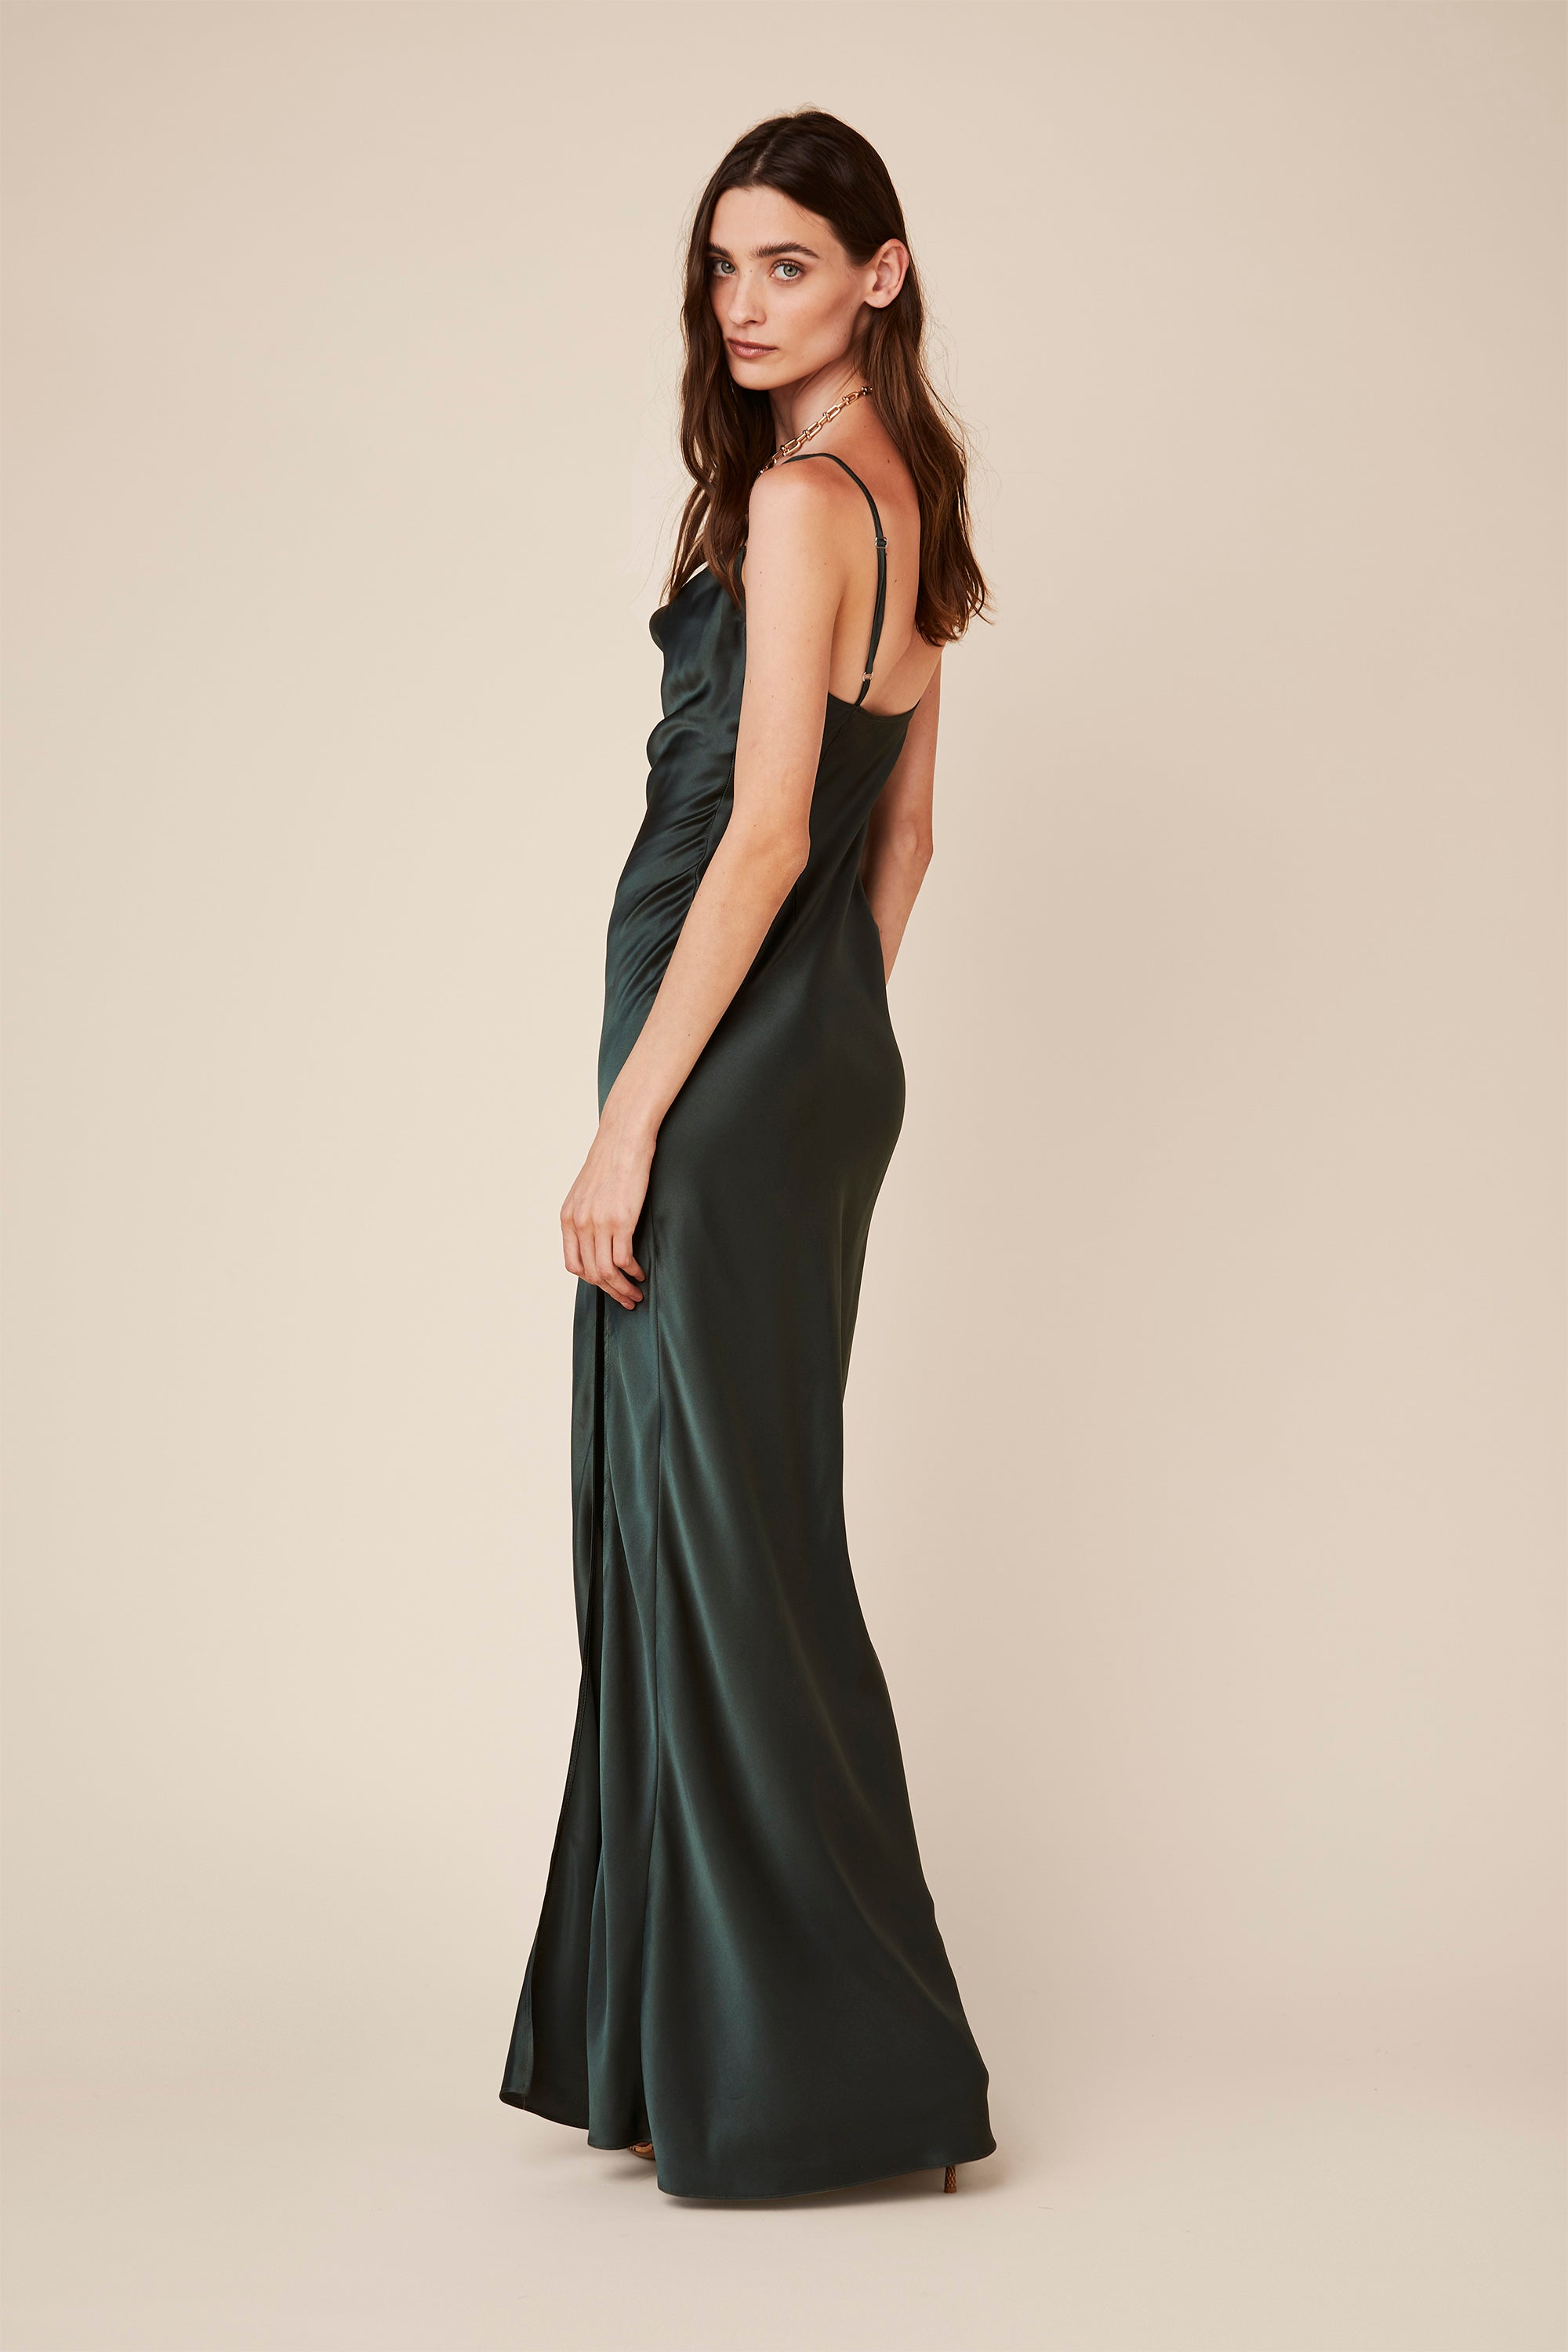 CHASE SILK DRESS | HUNTER GREEN - Final Sale